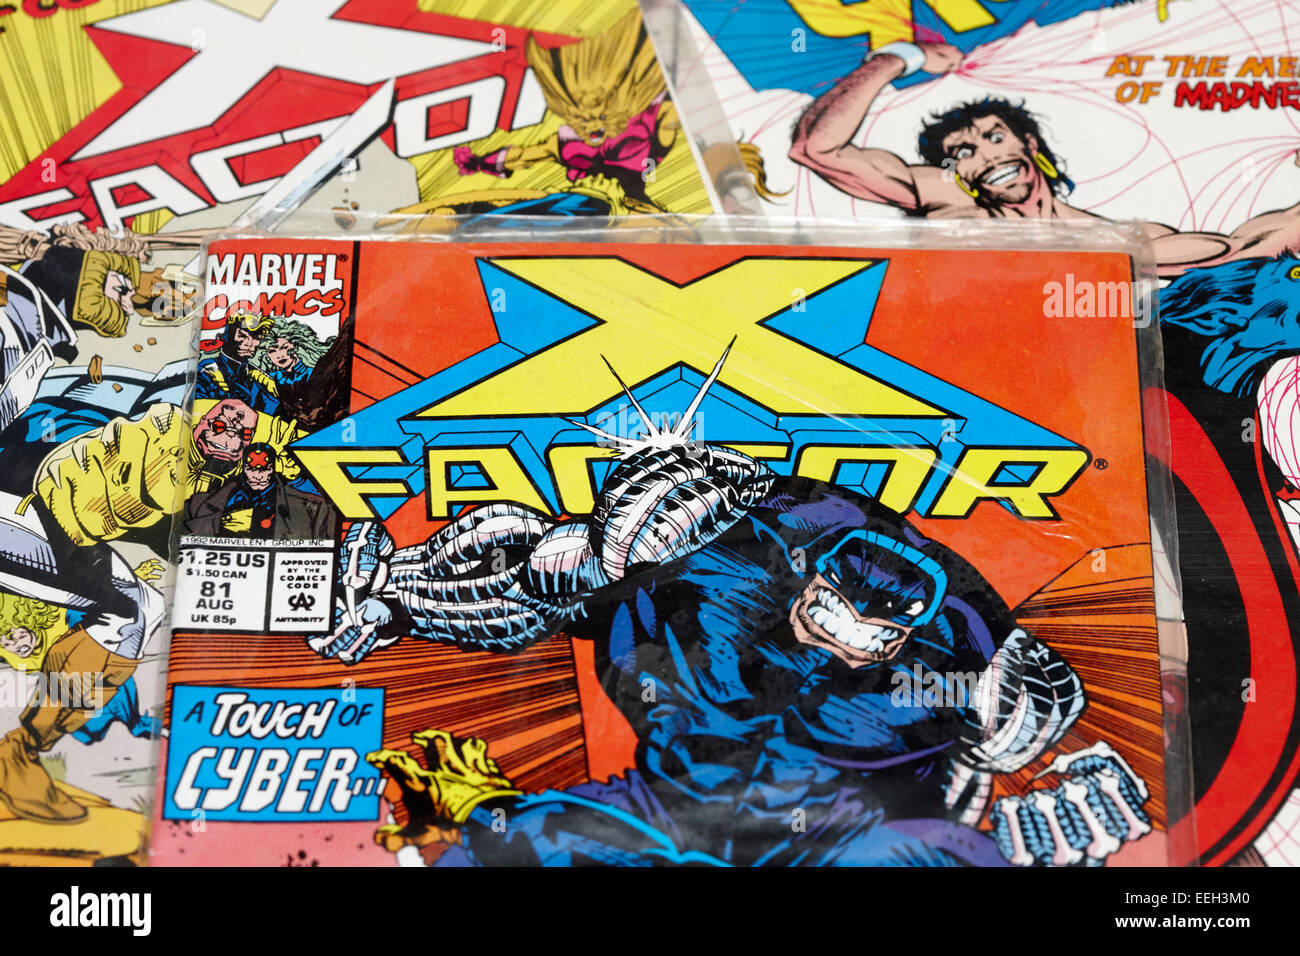 collection of old marvel comics including x-factor - Stock Image